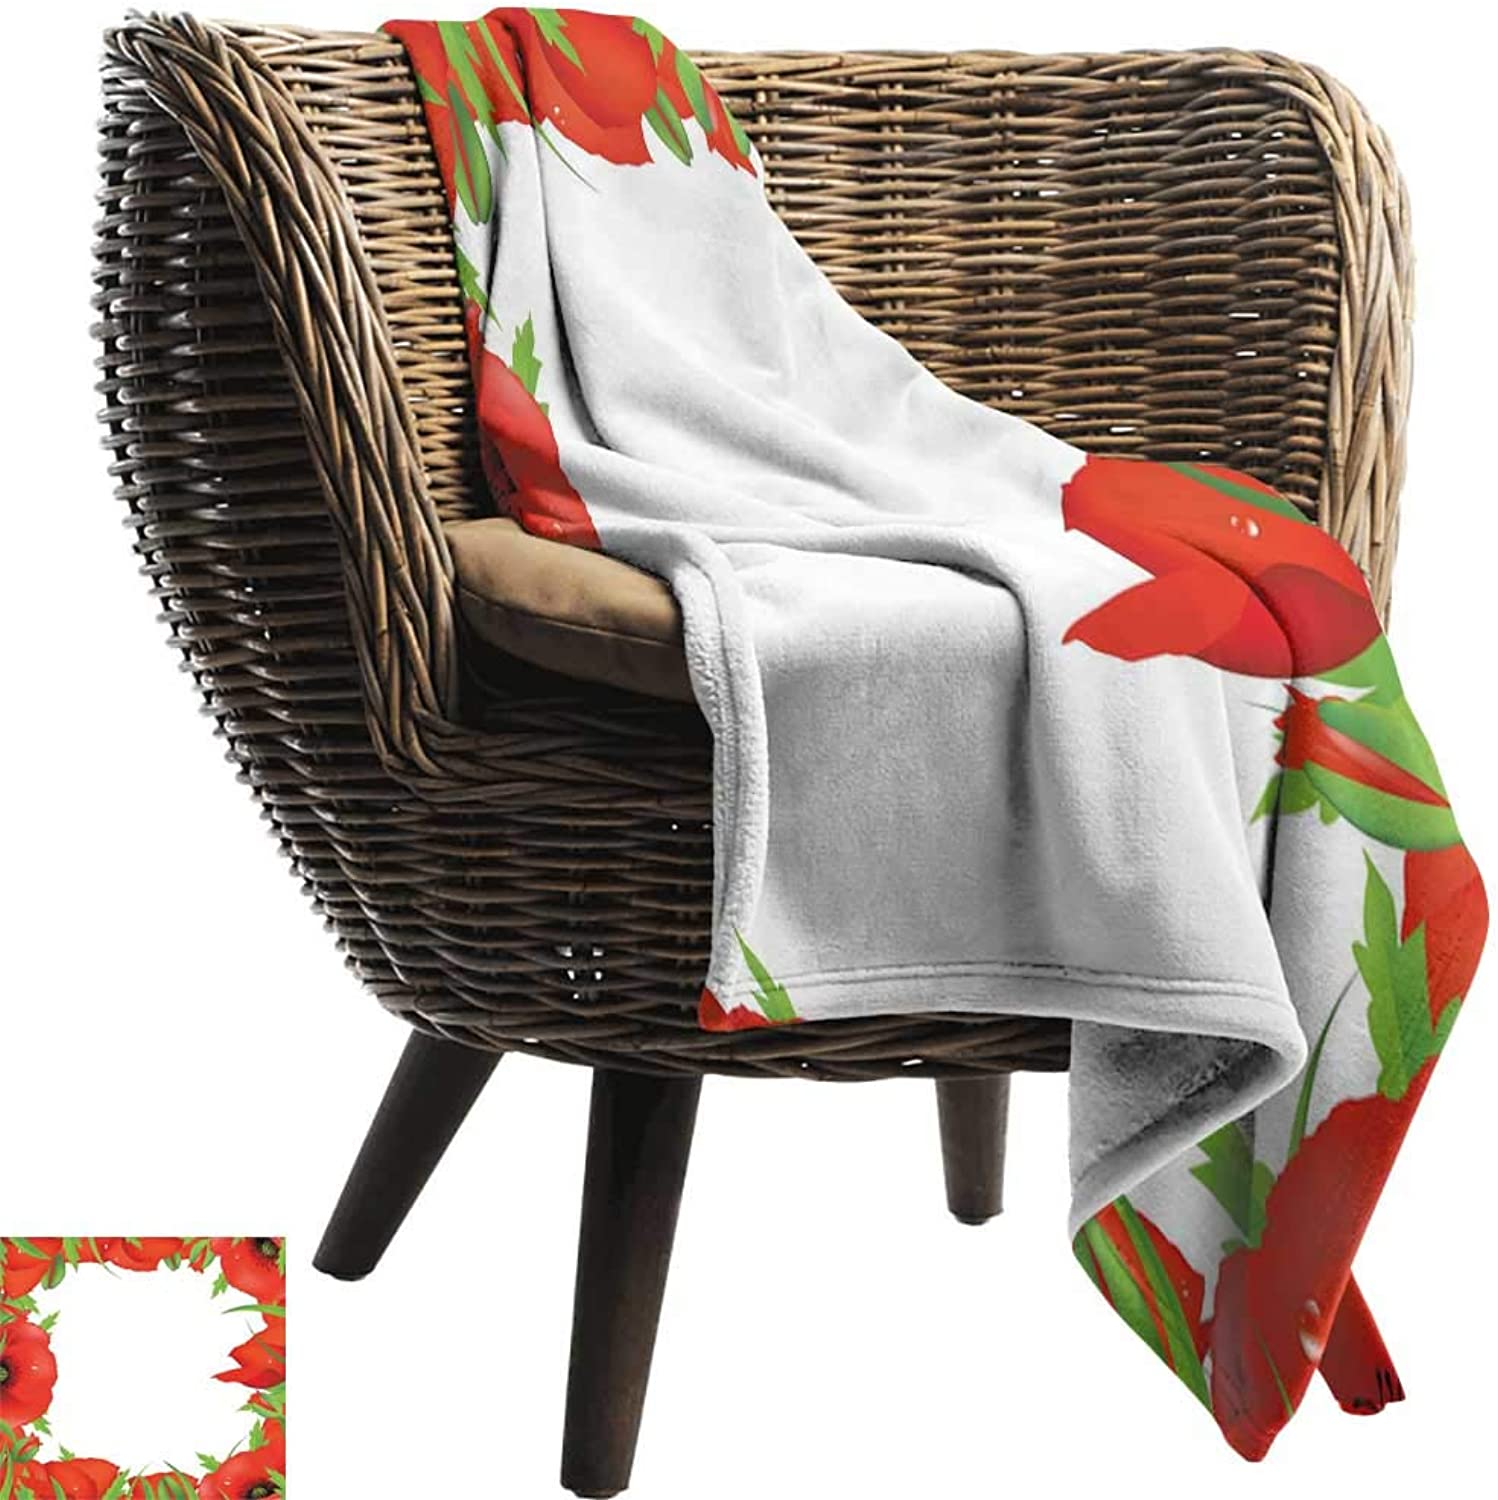 BelleAckerman Bed Blanket,Poppy,Lively Summer Meadow Frame Efflorescing Field in The Countryside Theme,Vermilion Green White,for Bed & Couch Sofa Easy Care 50 x60